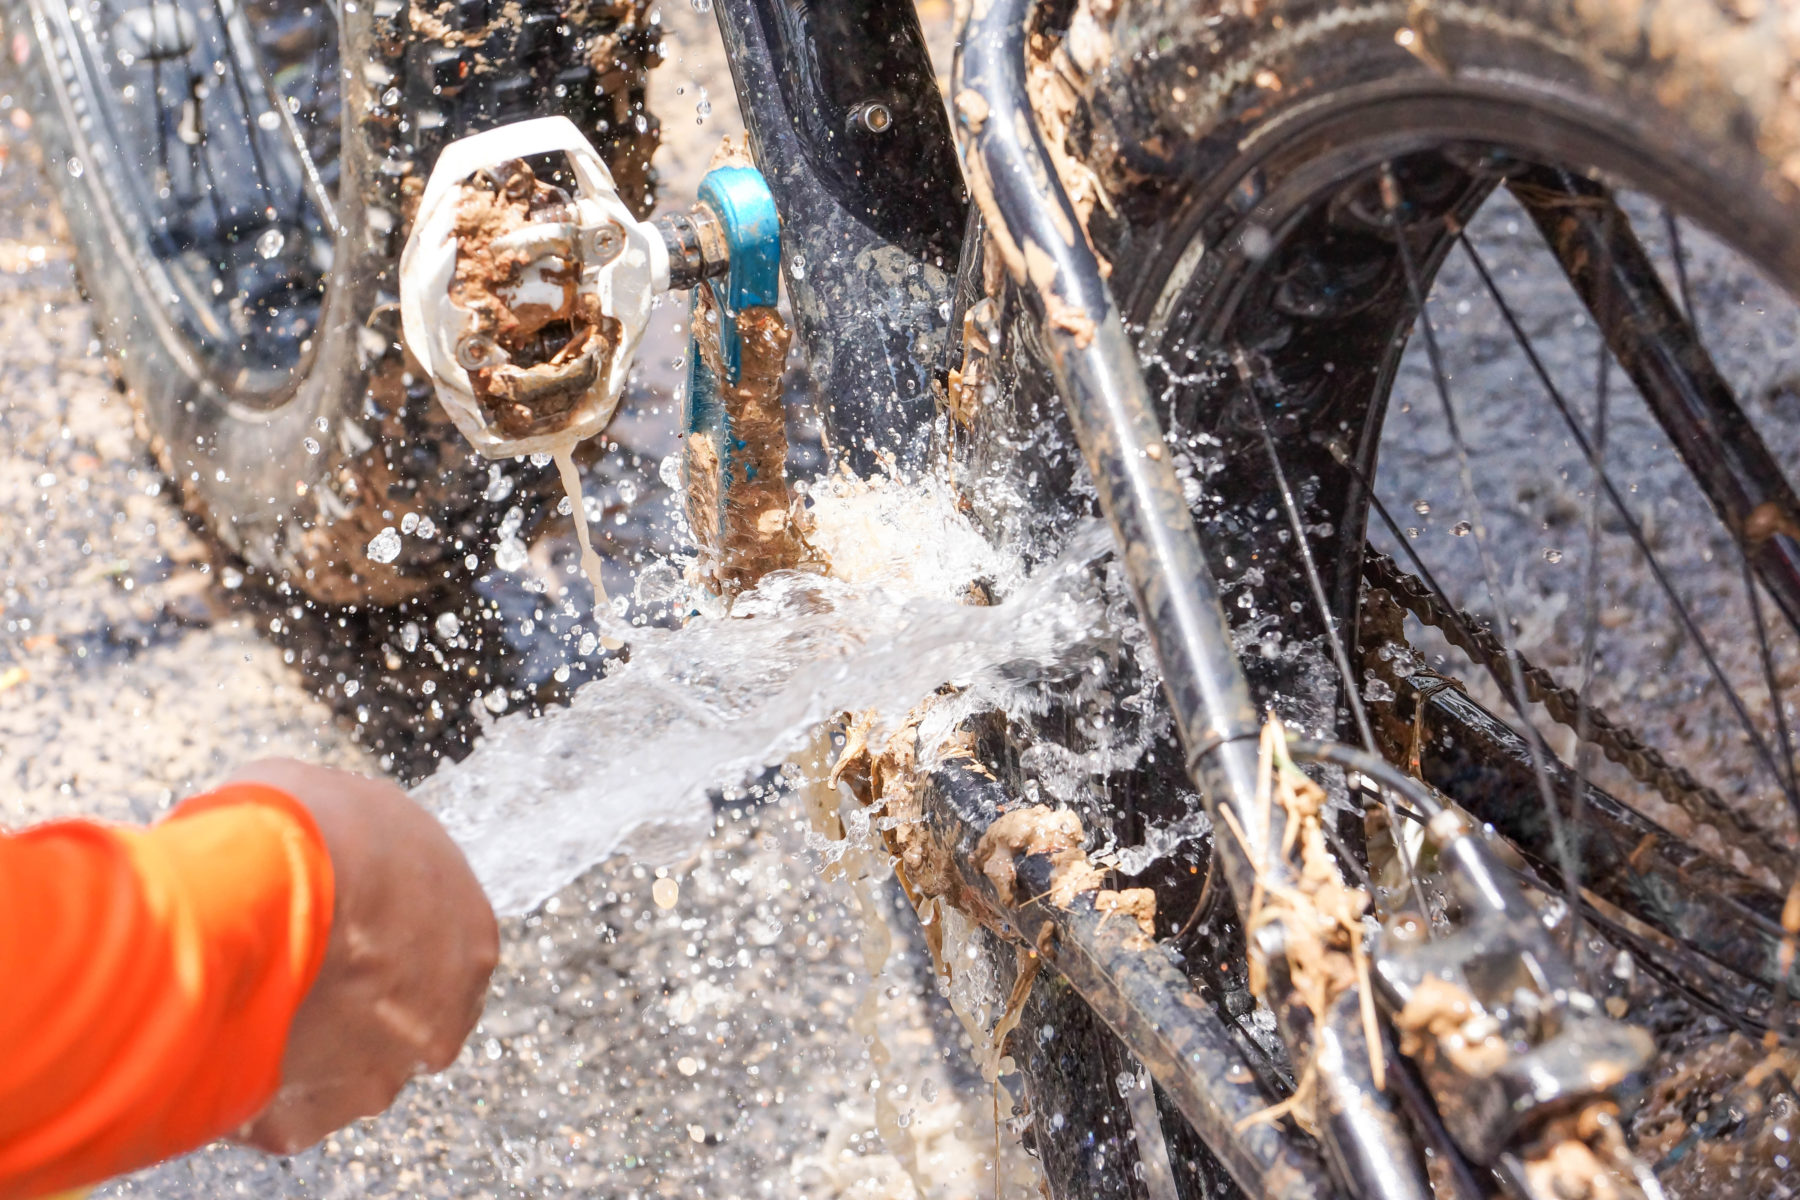 A person aims a hose at a muddy bicycle